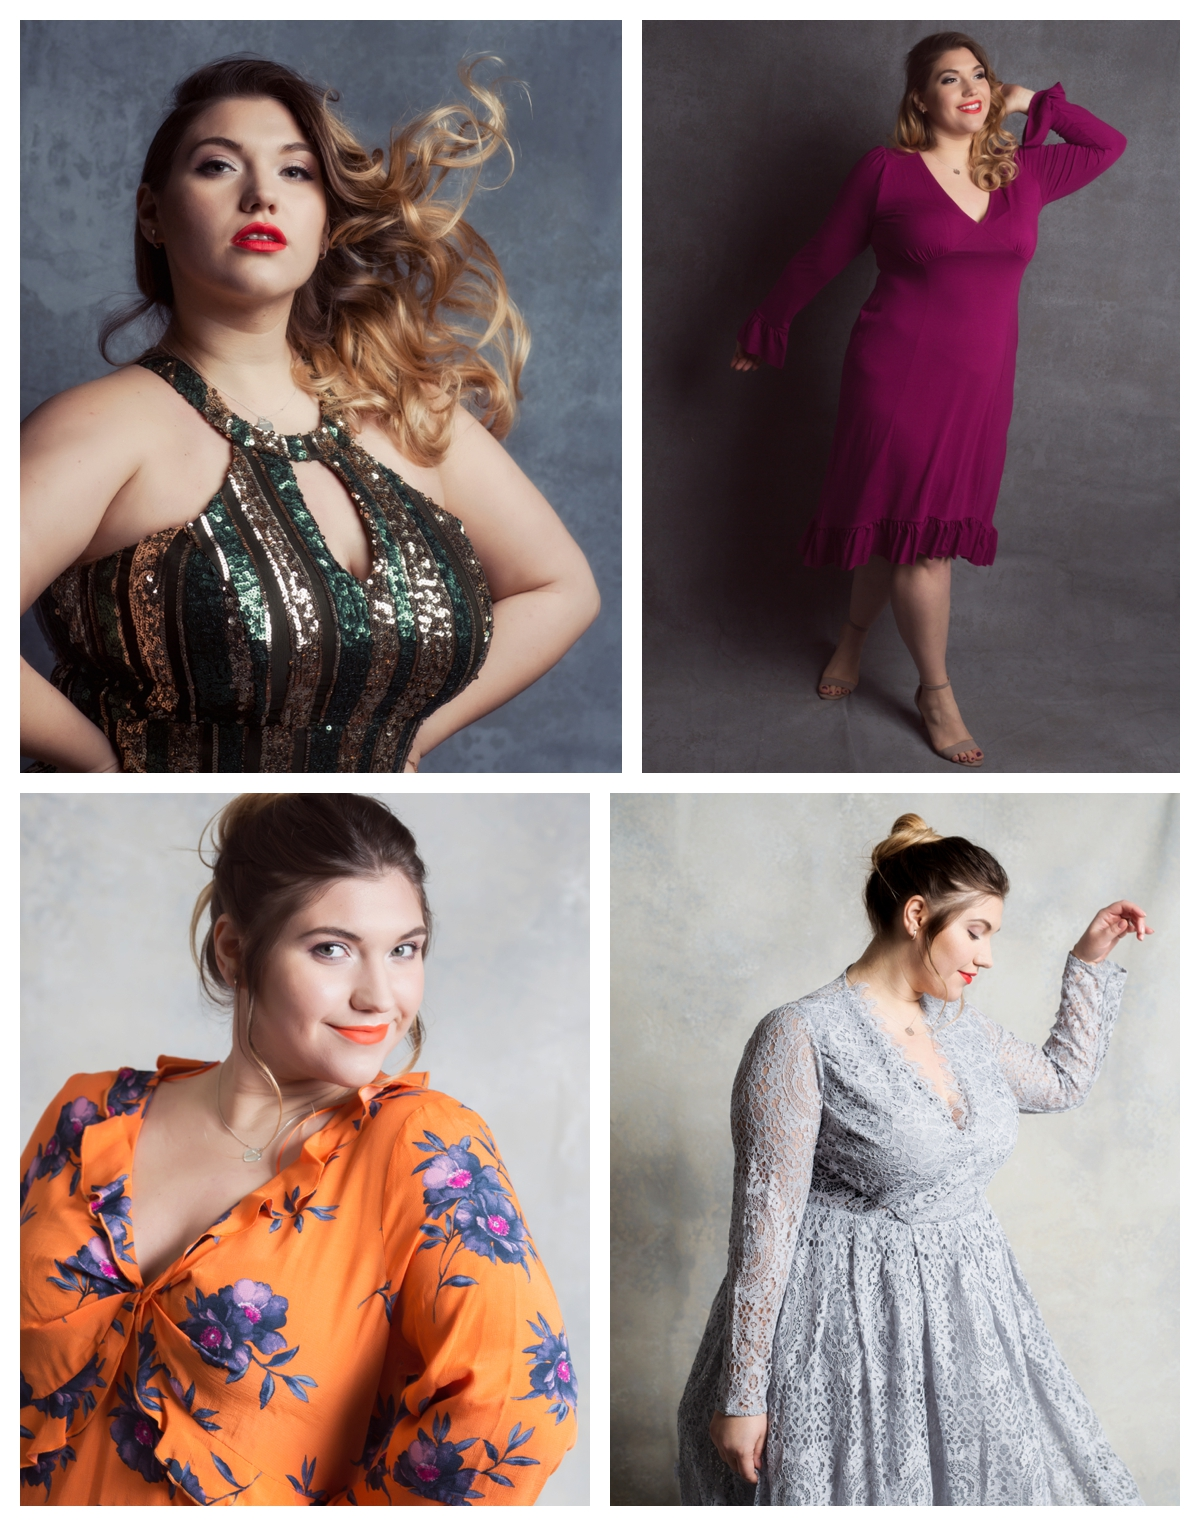 Plus size and curvy girls portrait session